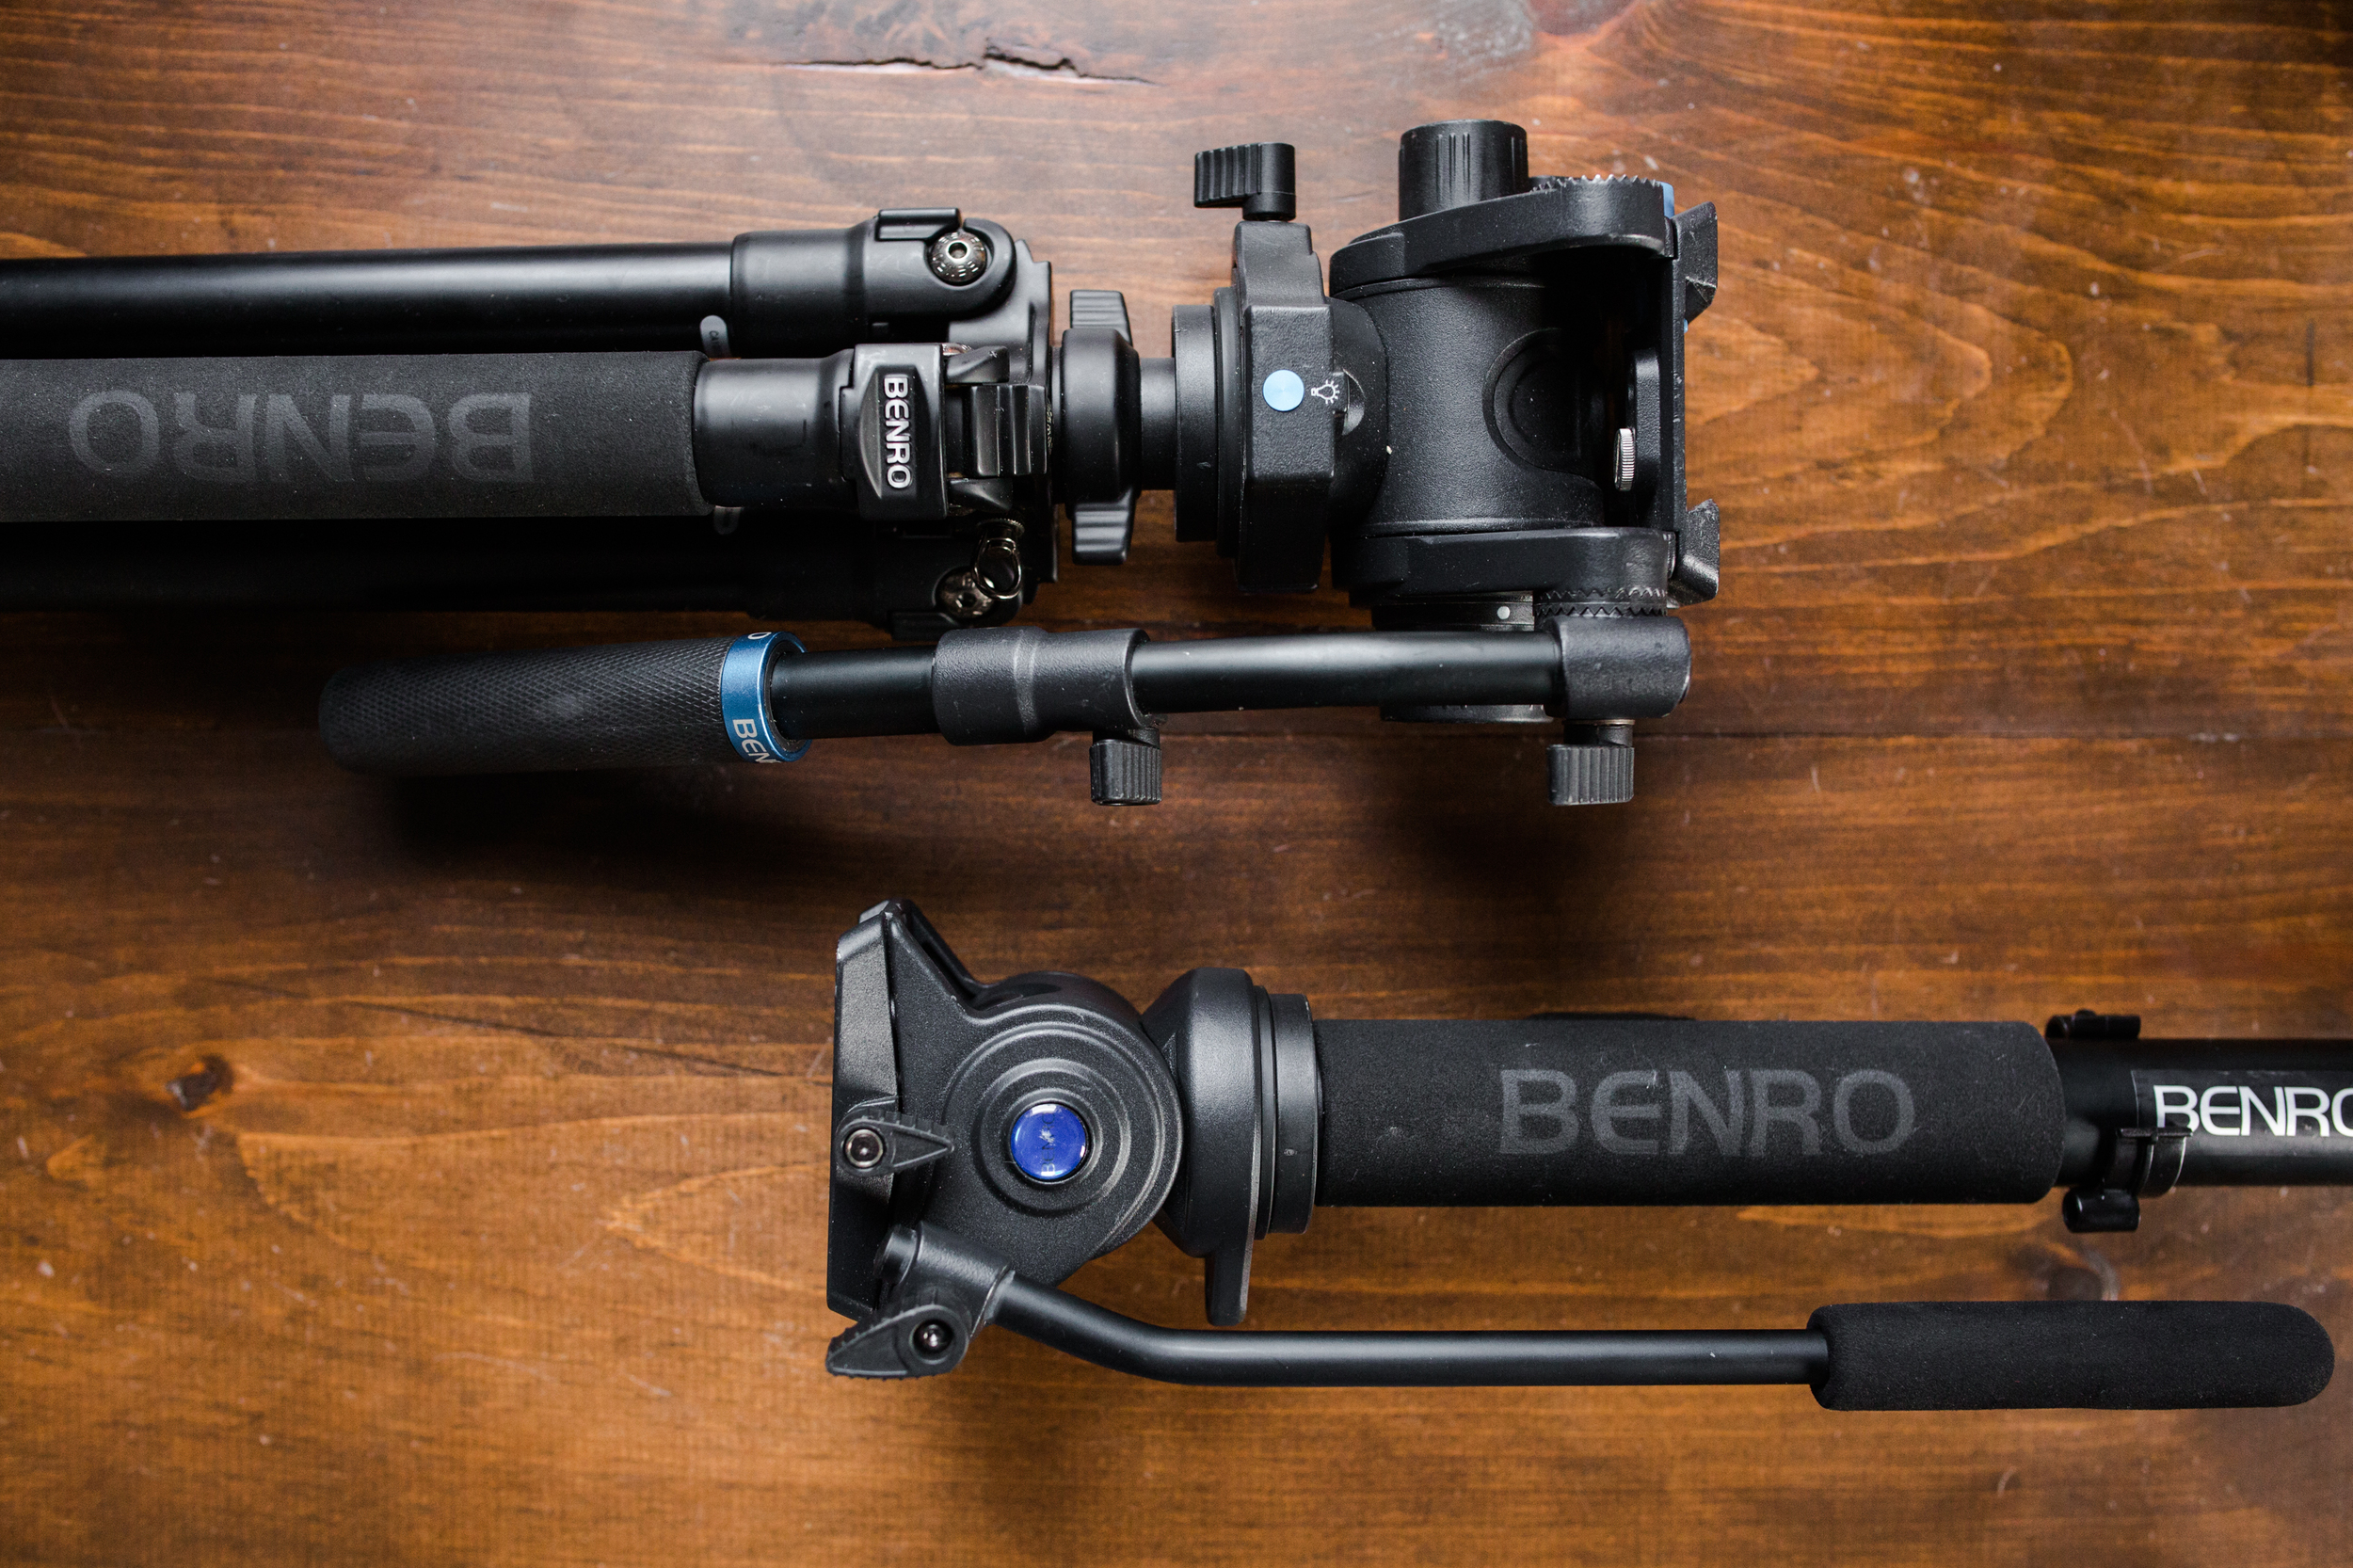 These are my main camera stabilizers.  Benro tripods with S6 fluid heads and a Benro monopod with an S4 fluid head.  Most of the day I am shooting with my C100 on the monopod.